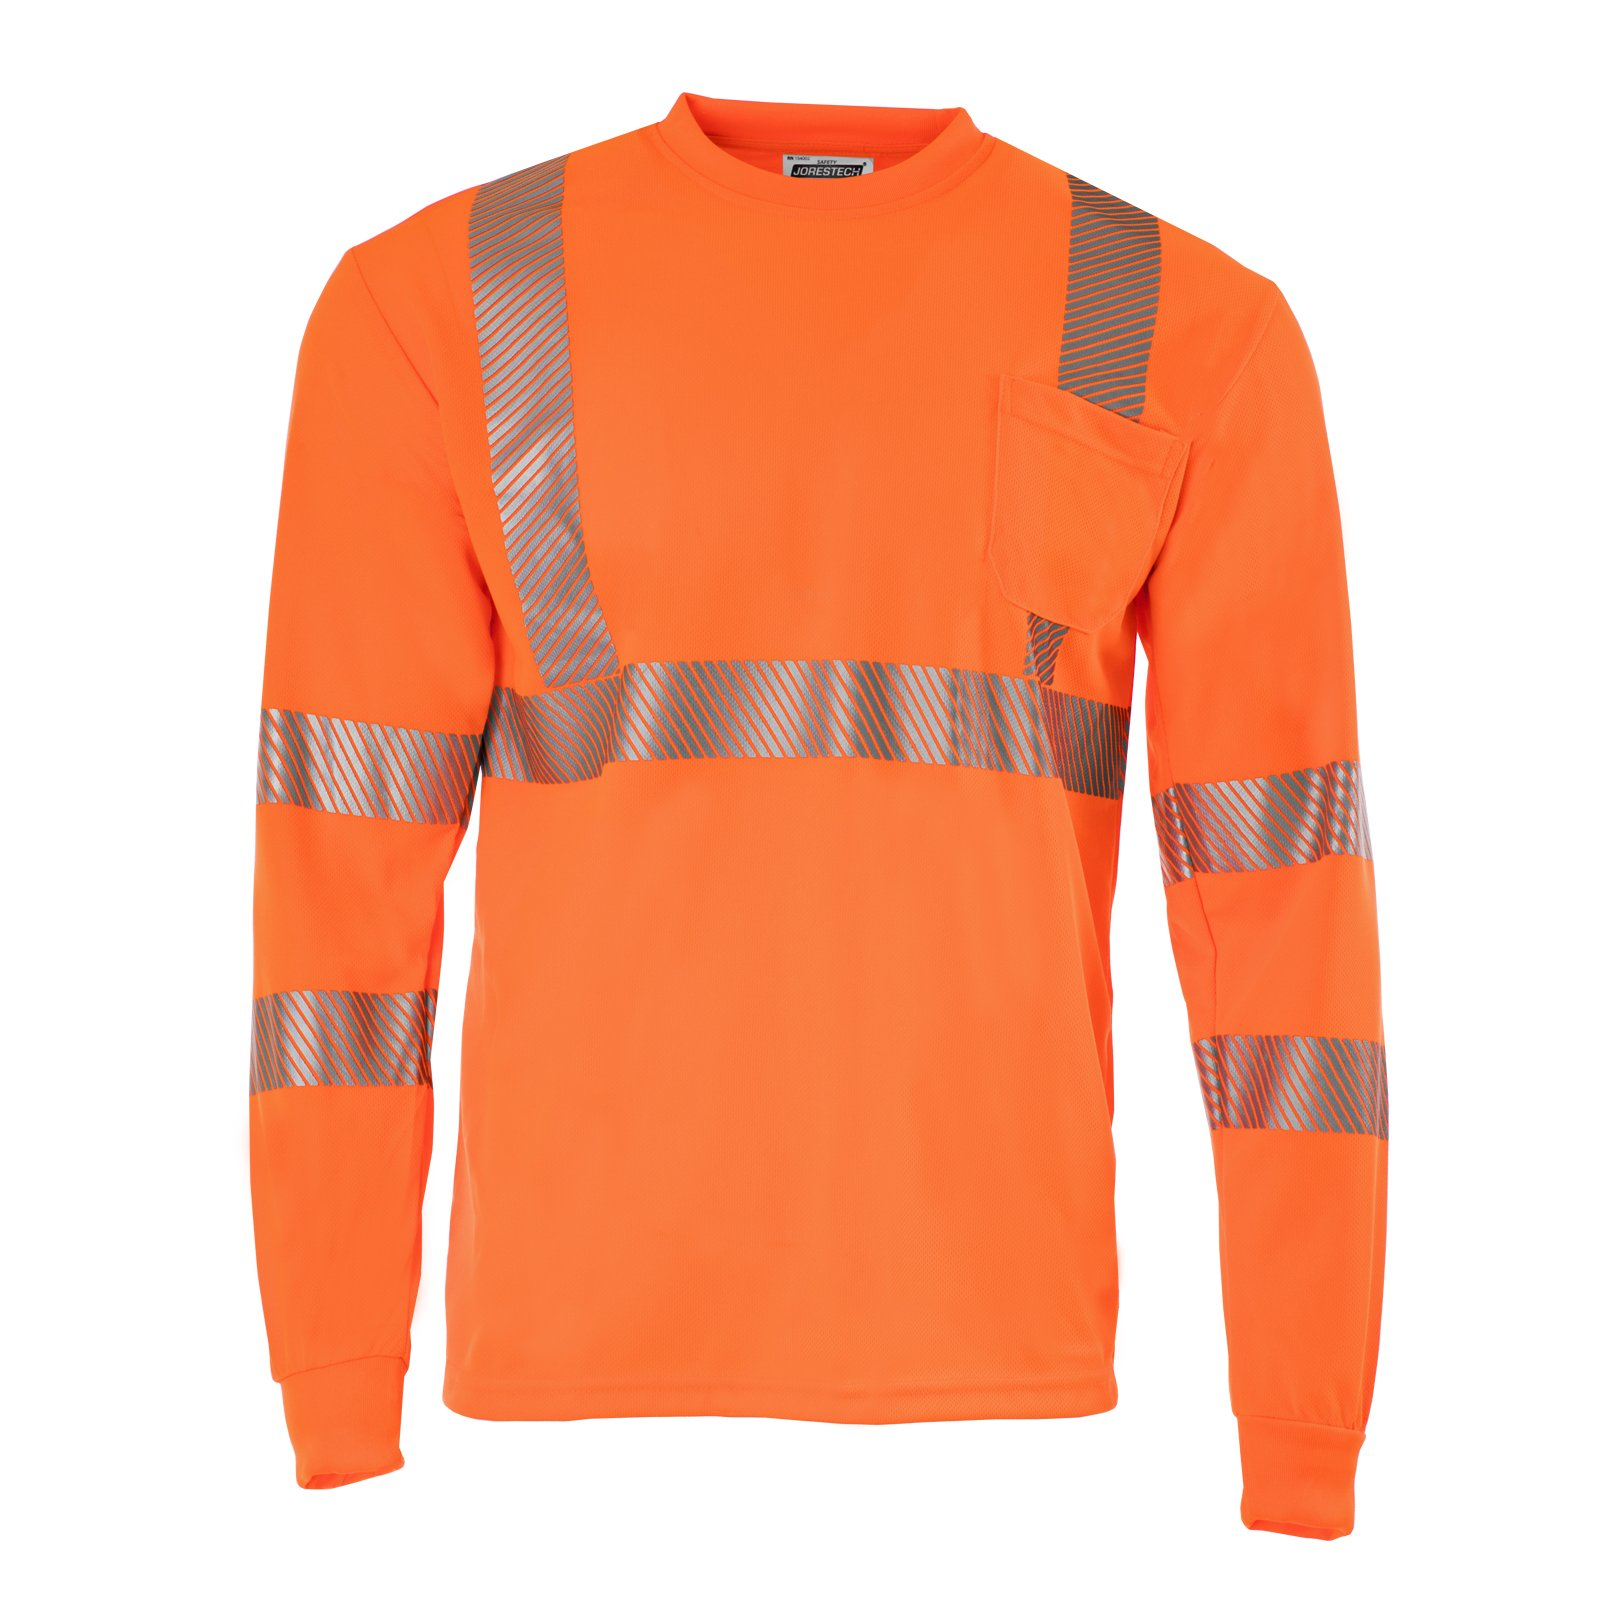 JORESTECH High Visibility Safety long sleeve shirt (Medium, Orange)